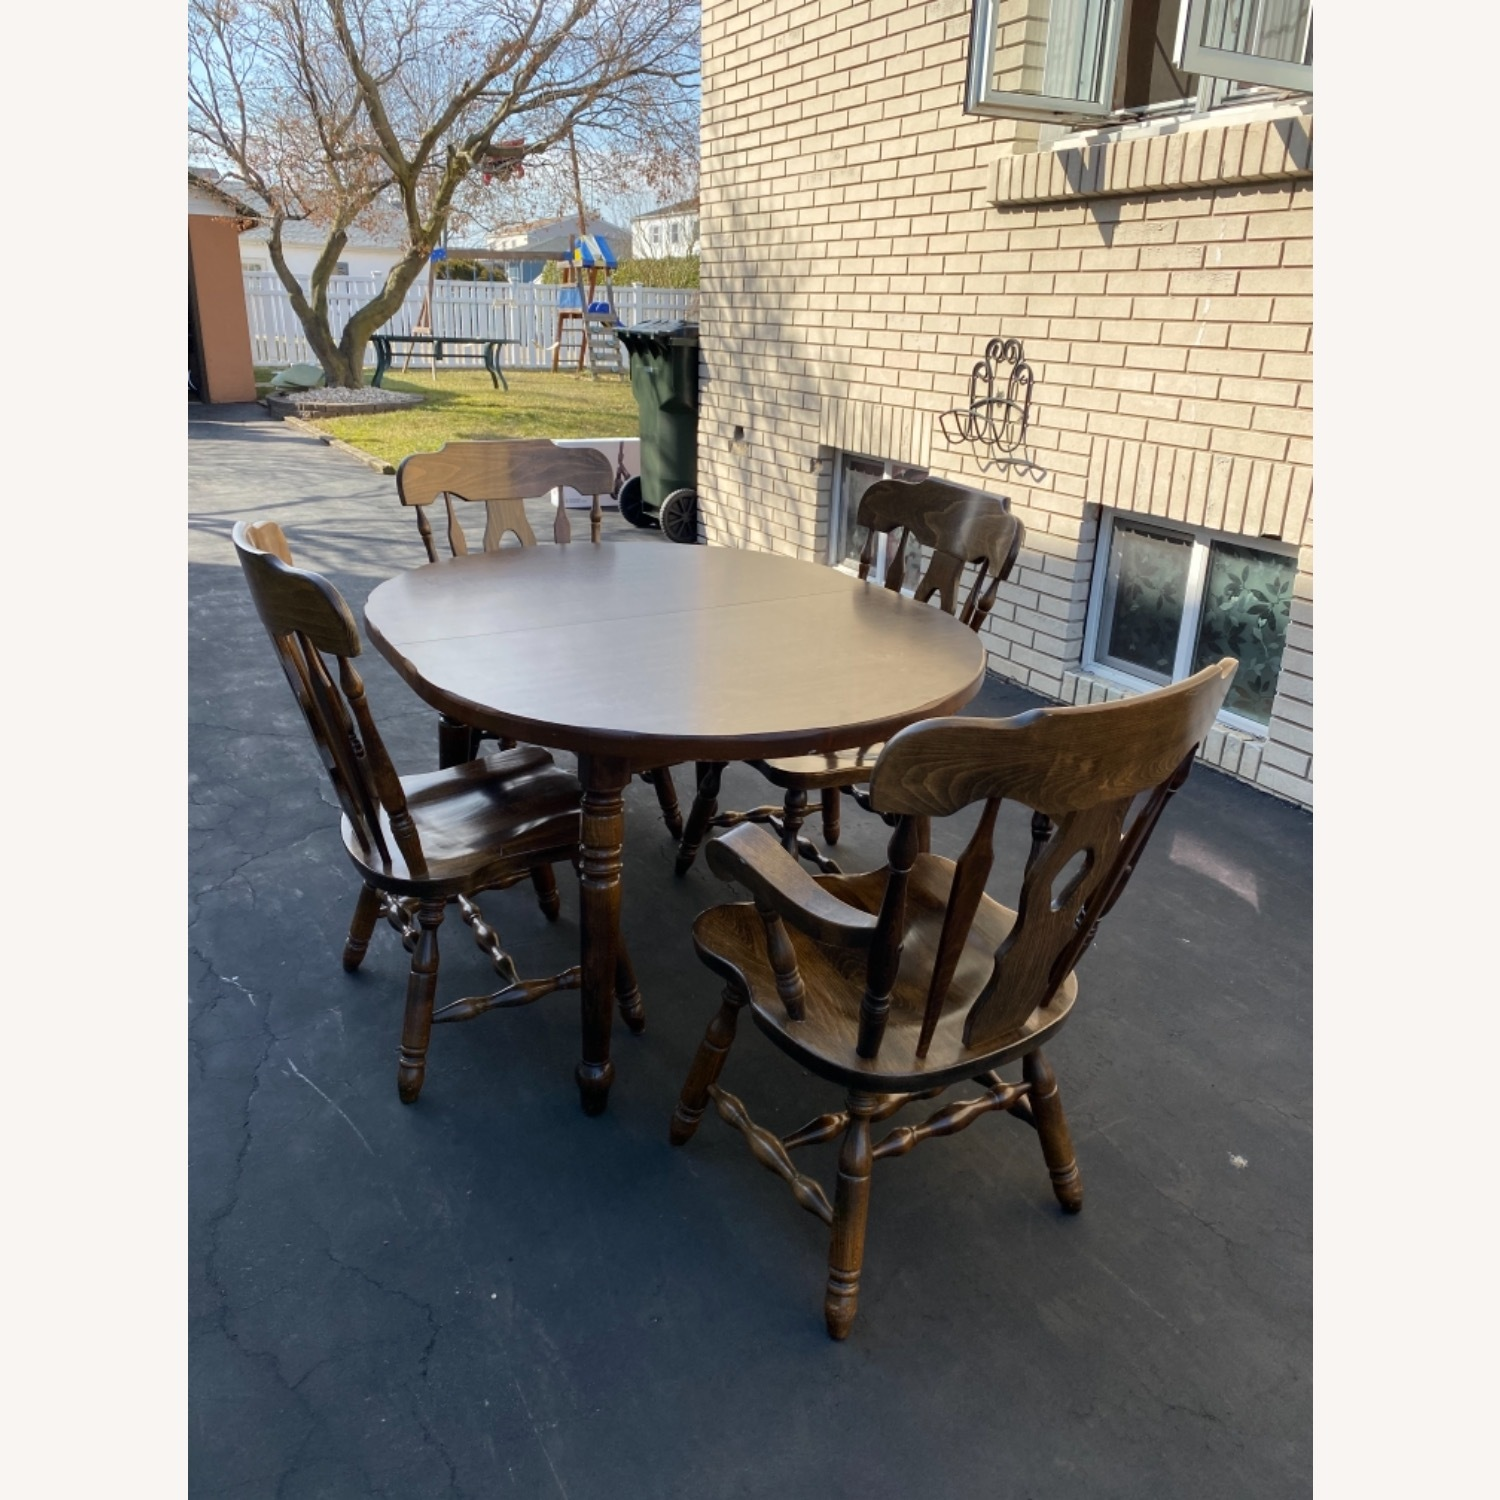 Solid Wood Dining Table with 4 Chairs - image-1